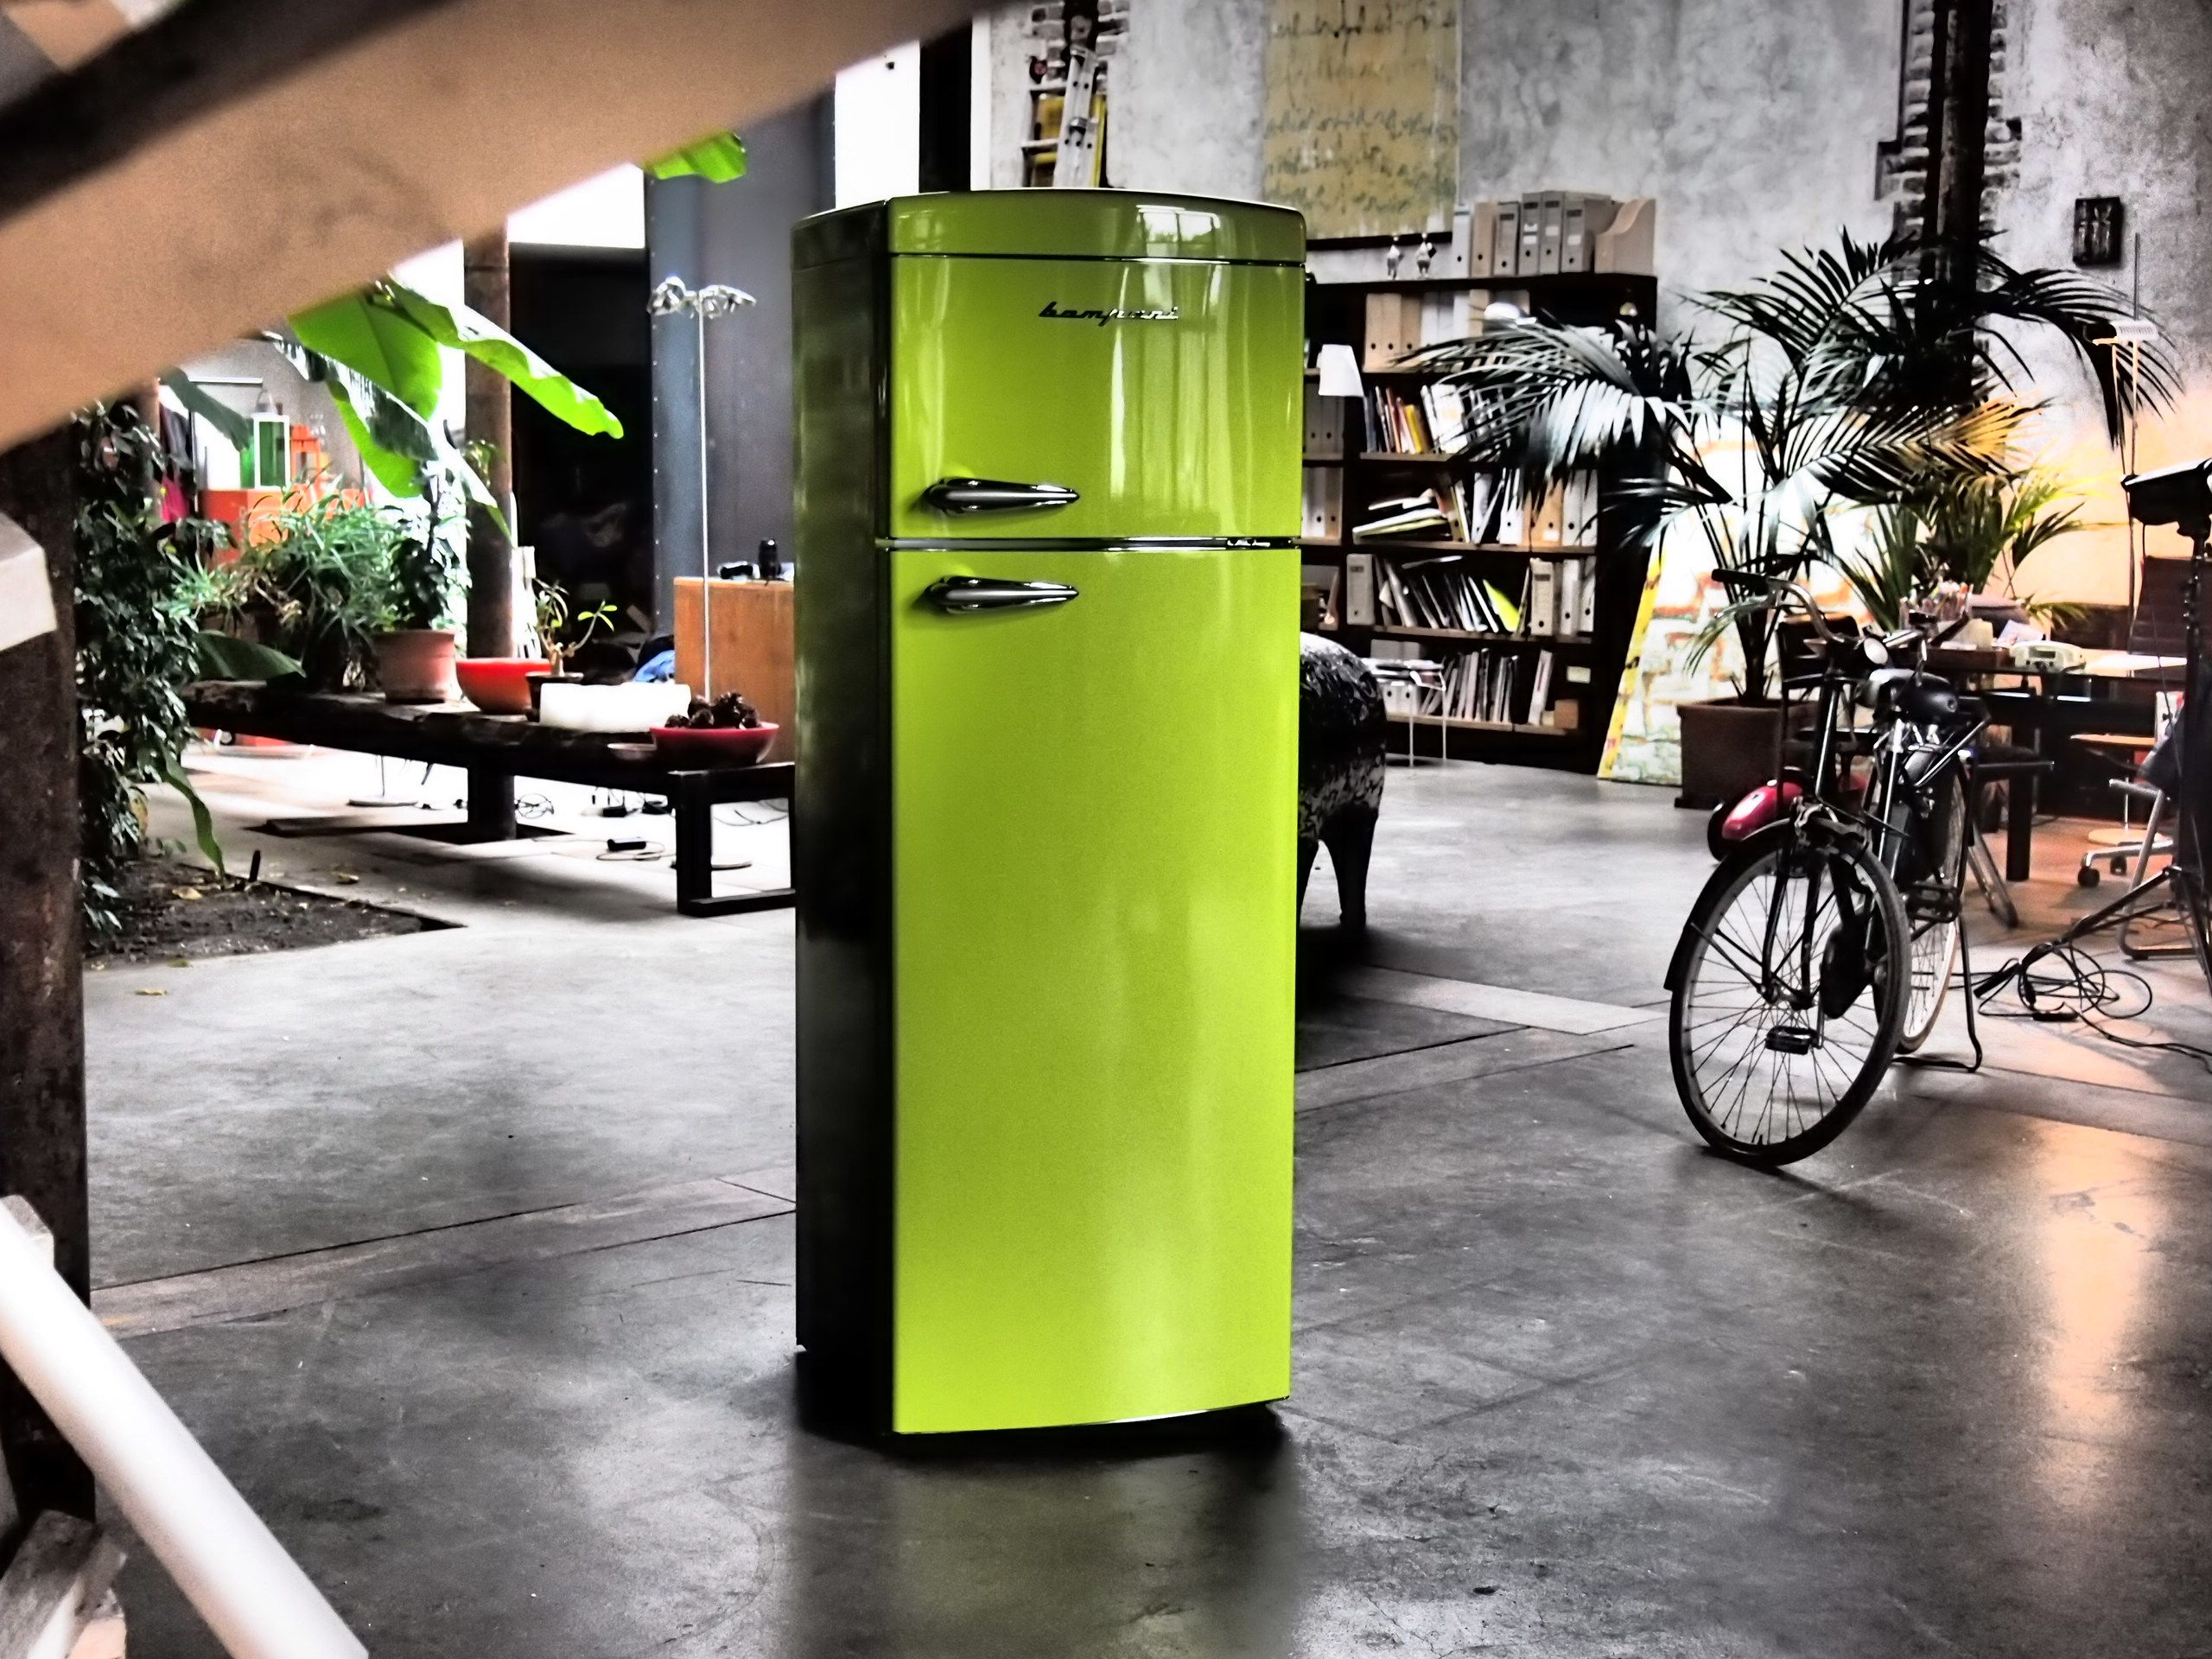 frigo bompani retr verde lime e loft industriale connubio perfetto green bompani. Black Bedroom Furniture Sets. Home Design Ideas